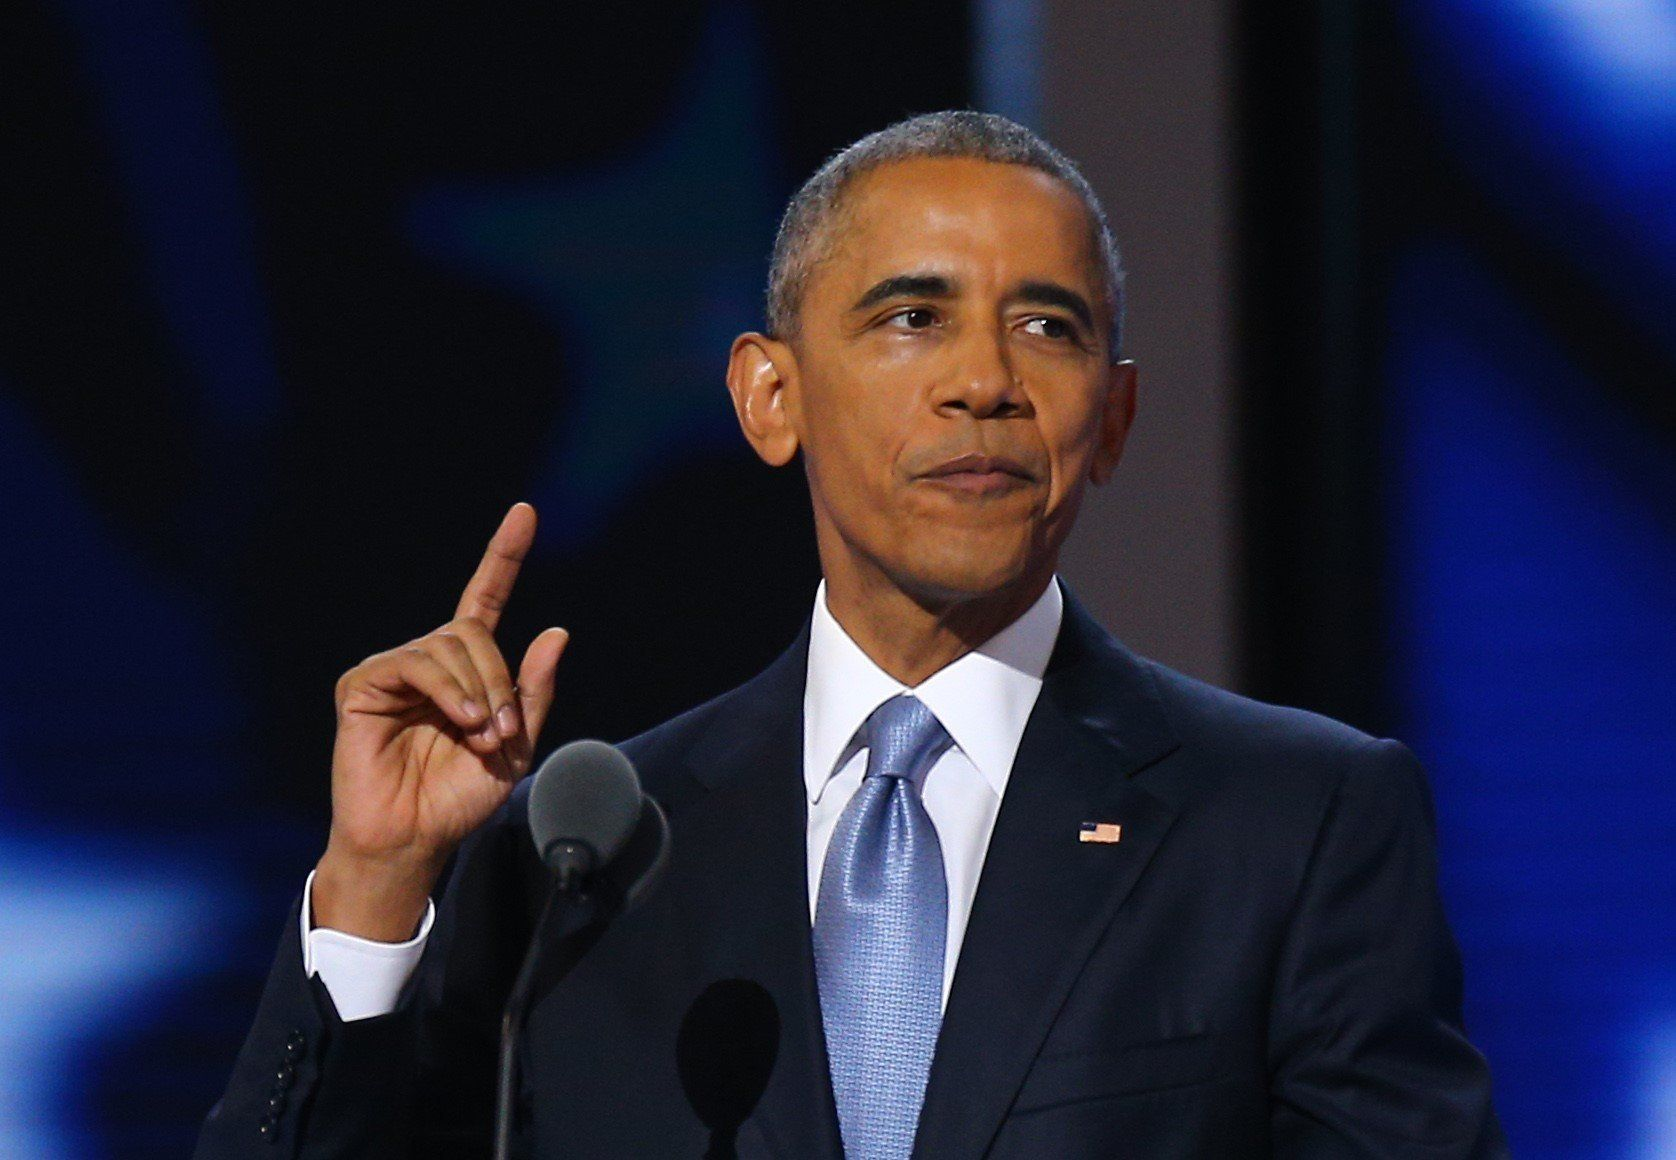 PHILADELPHIA, USA - JULY 28: U.S. President Barack Obama delivers a speech during a congress ahead of 58th Presidential election on November 08, in Philadelphia, USA on July 28, 2016. Hillary Clinton is the first female Presidential nominee in U.S. history.   (Photo by Volkan Furuncu/Anadolu Agency/Getty Images)